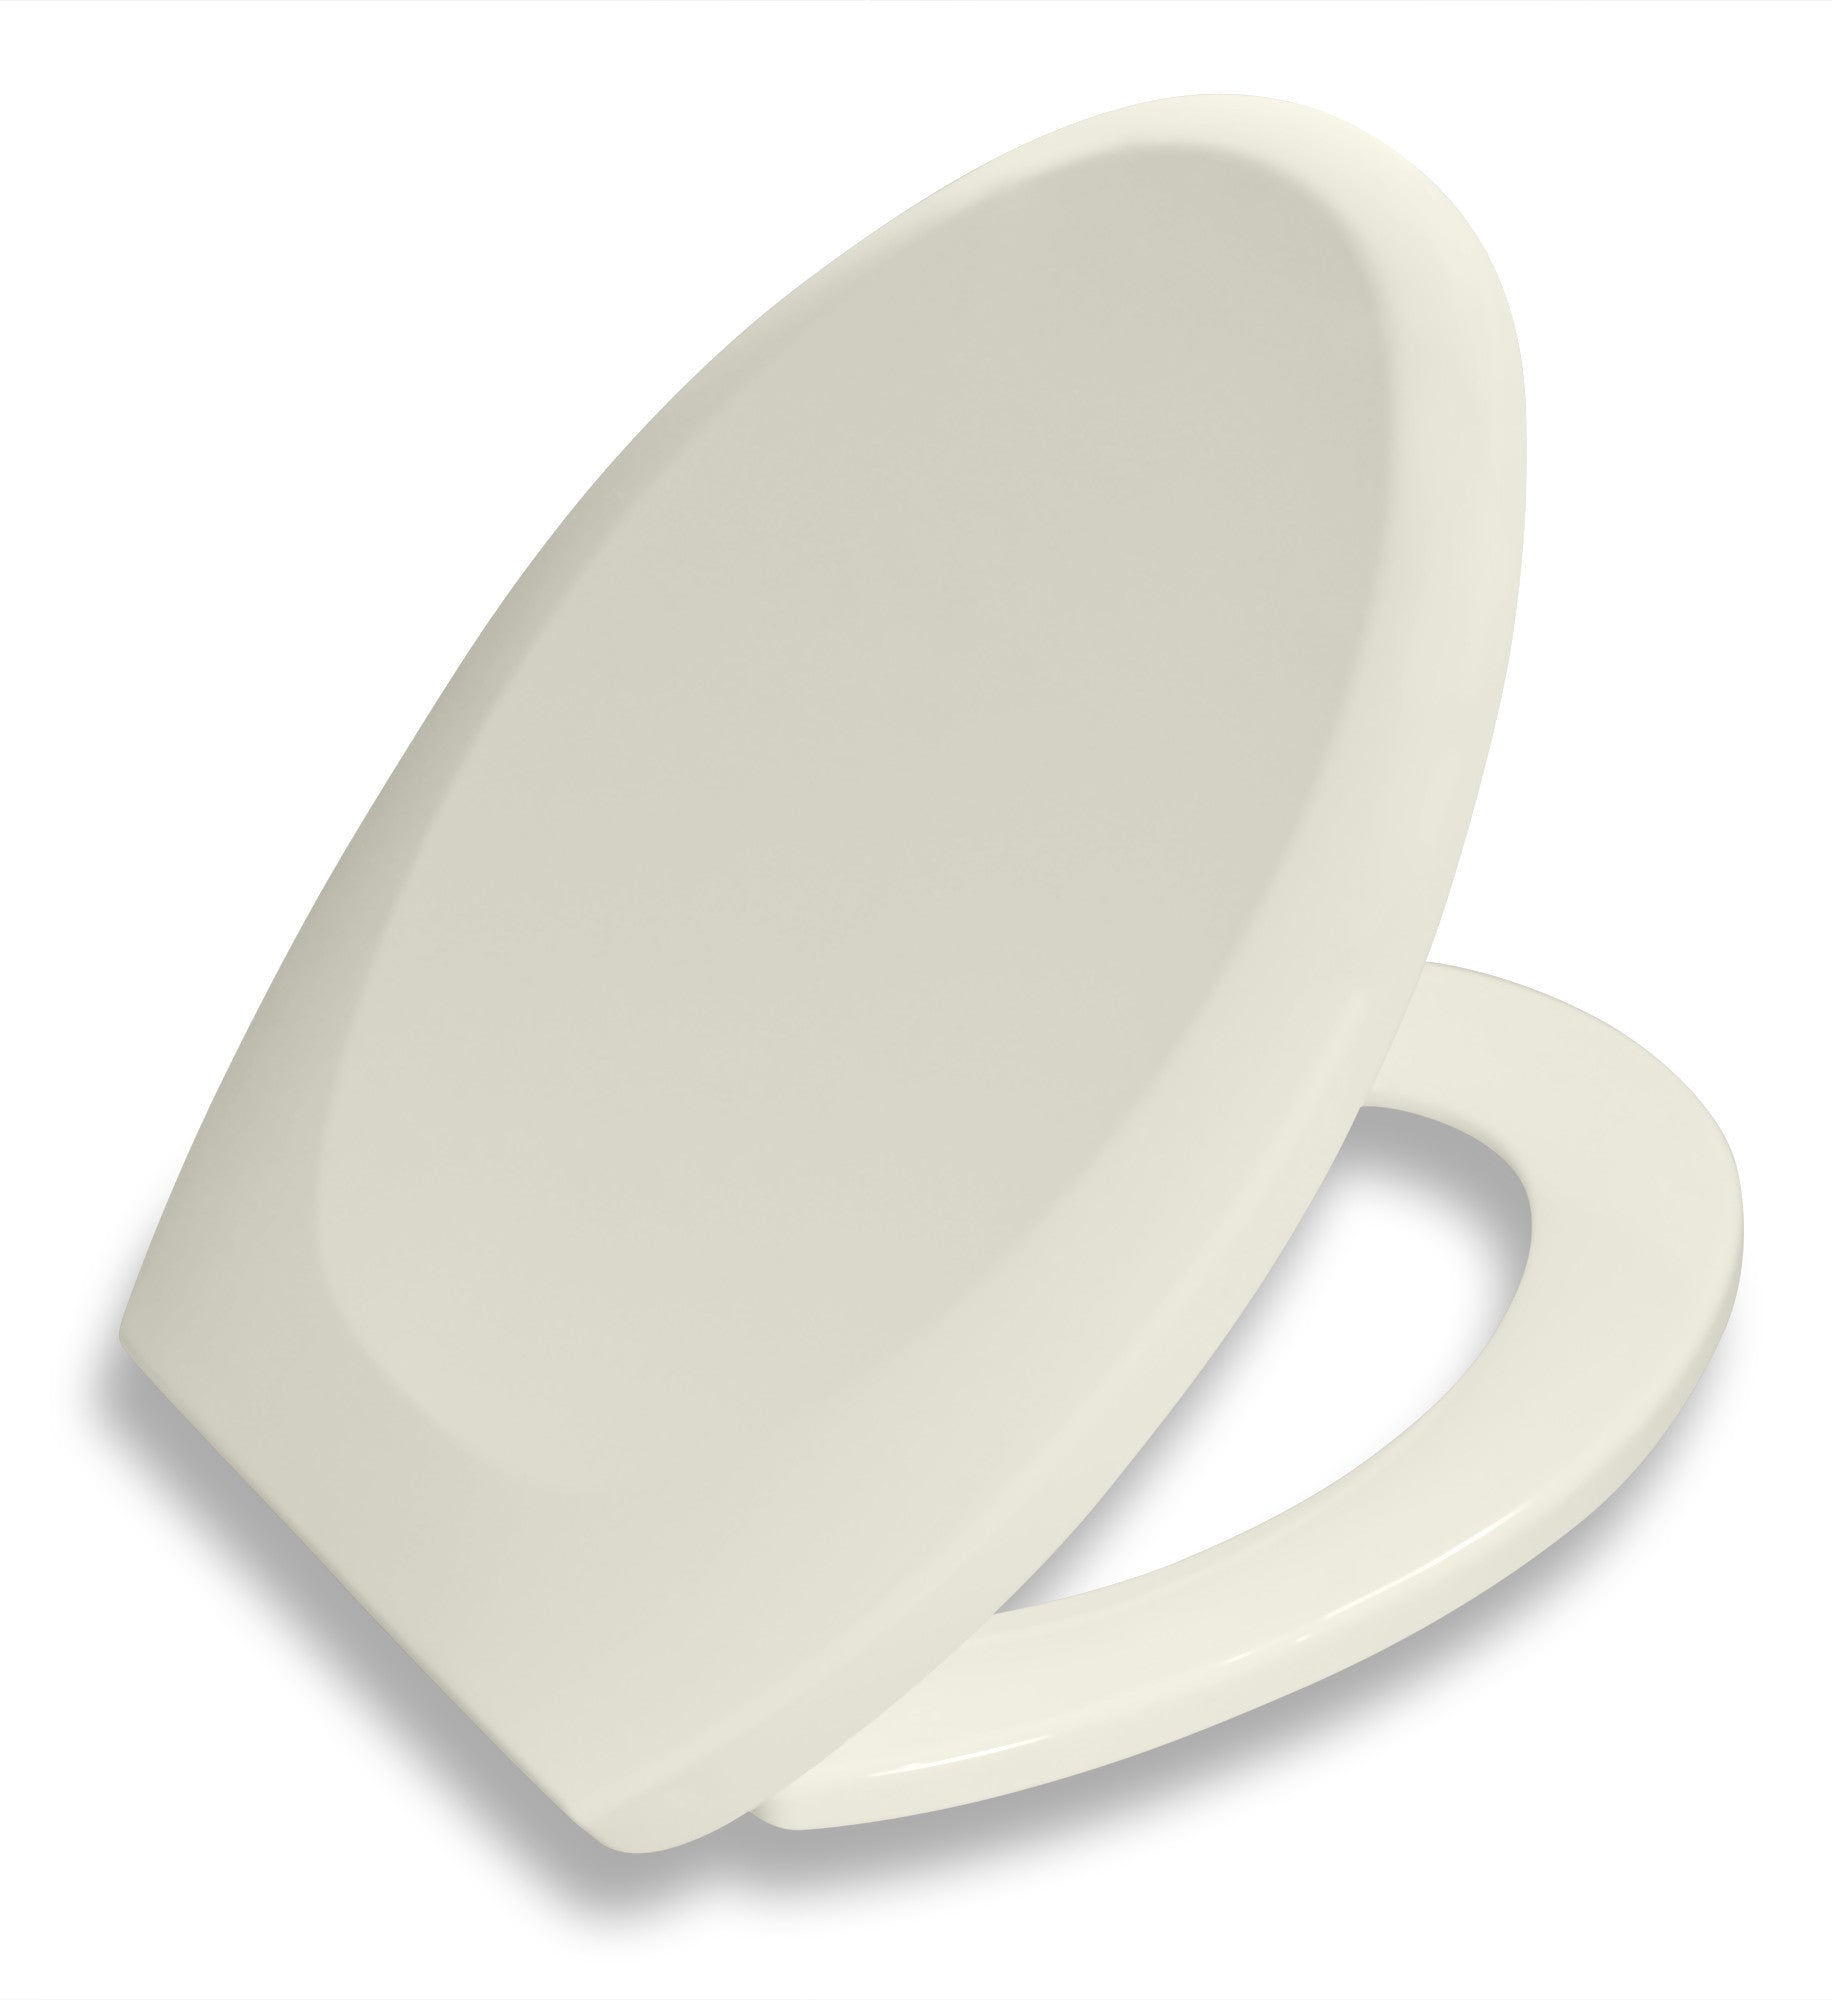 Admirable Premium Toilet Seat With Cover Affordable High Quality Evergreenethics Interior Chair Design Evergreenethicsorg